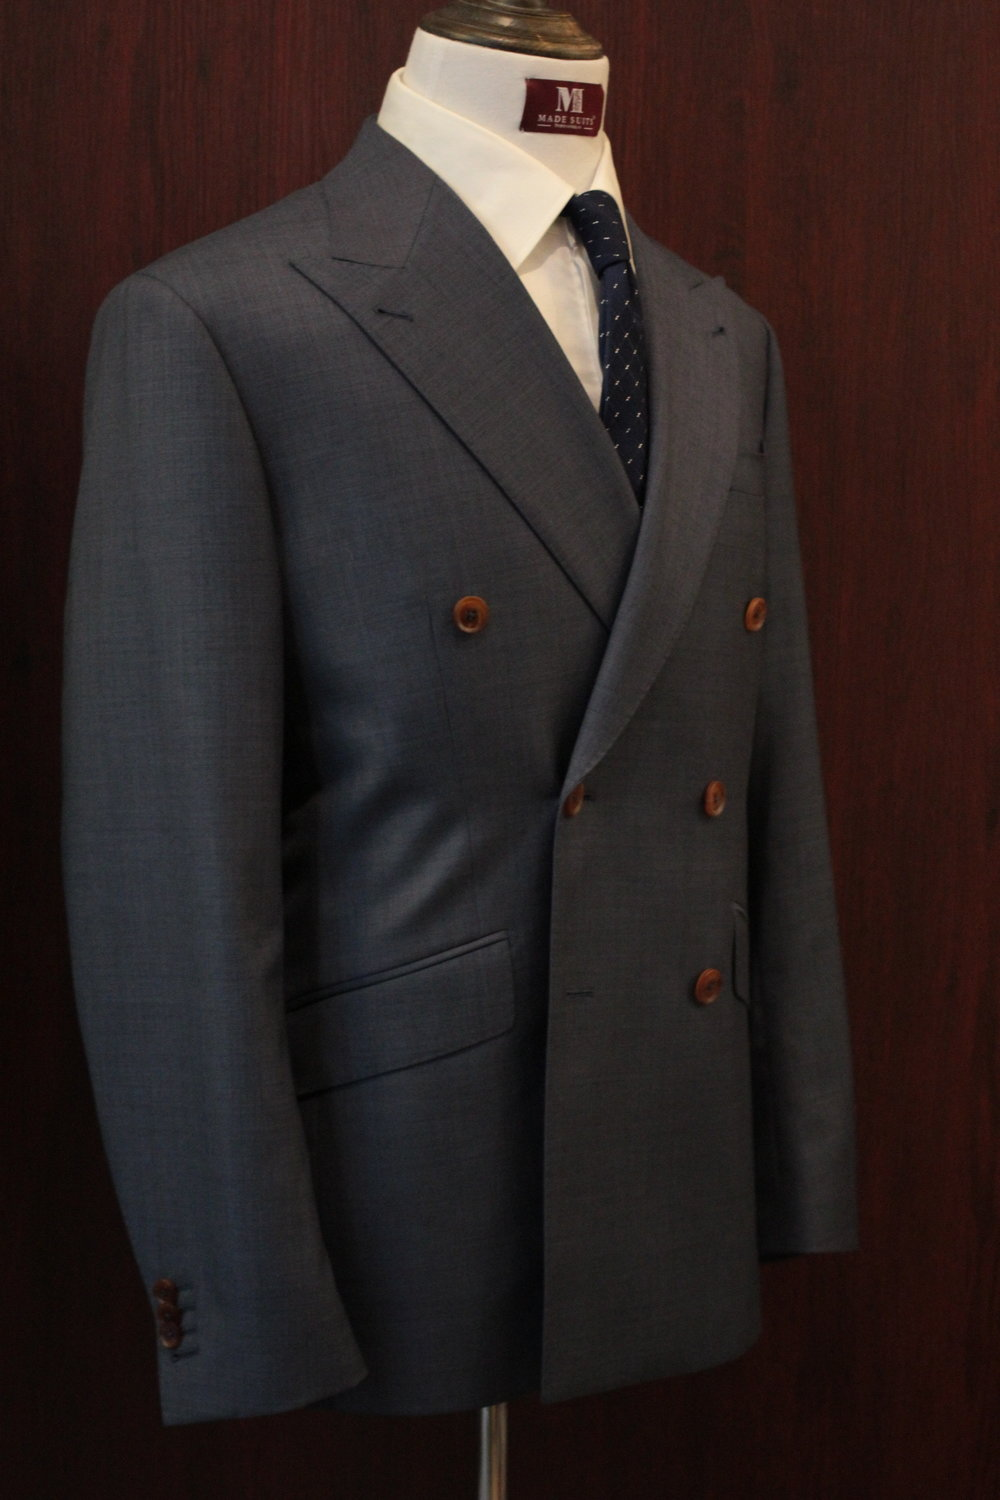 Mr Duke Double Breasted Sharkskin Blue Made Suits Made to Measure.JPG